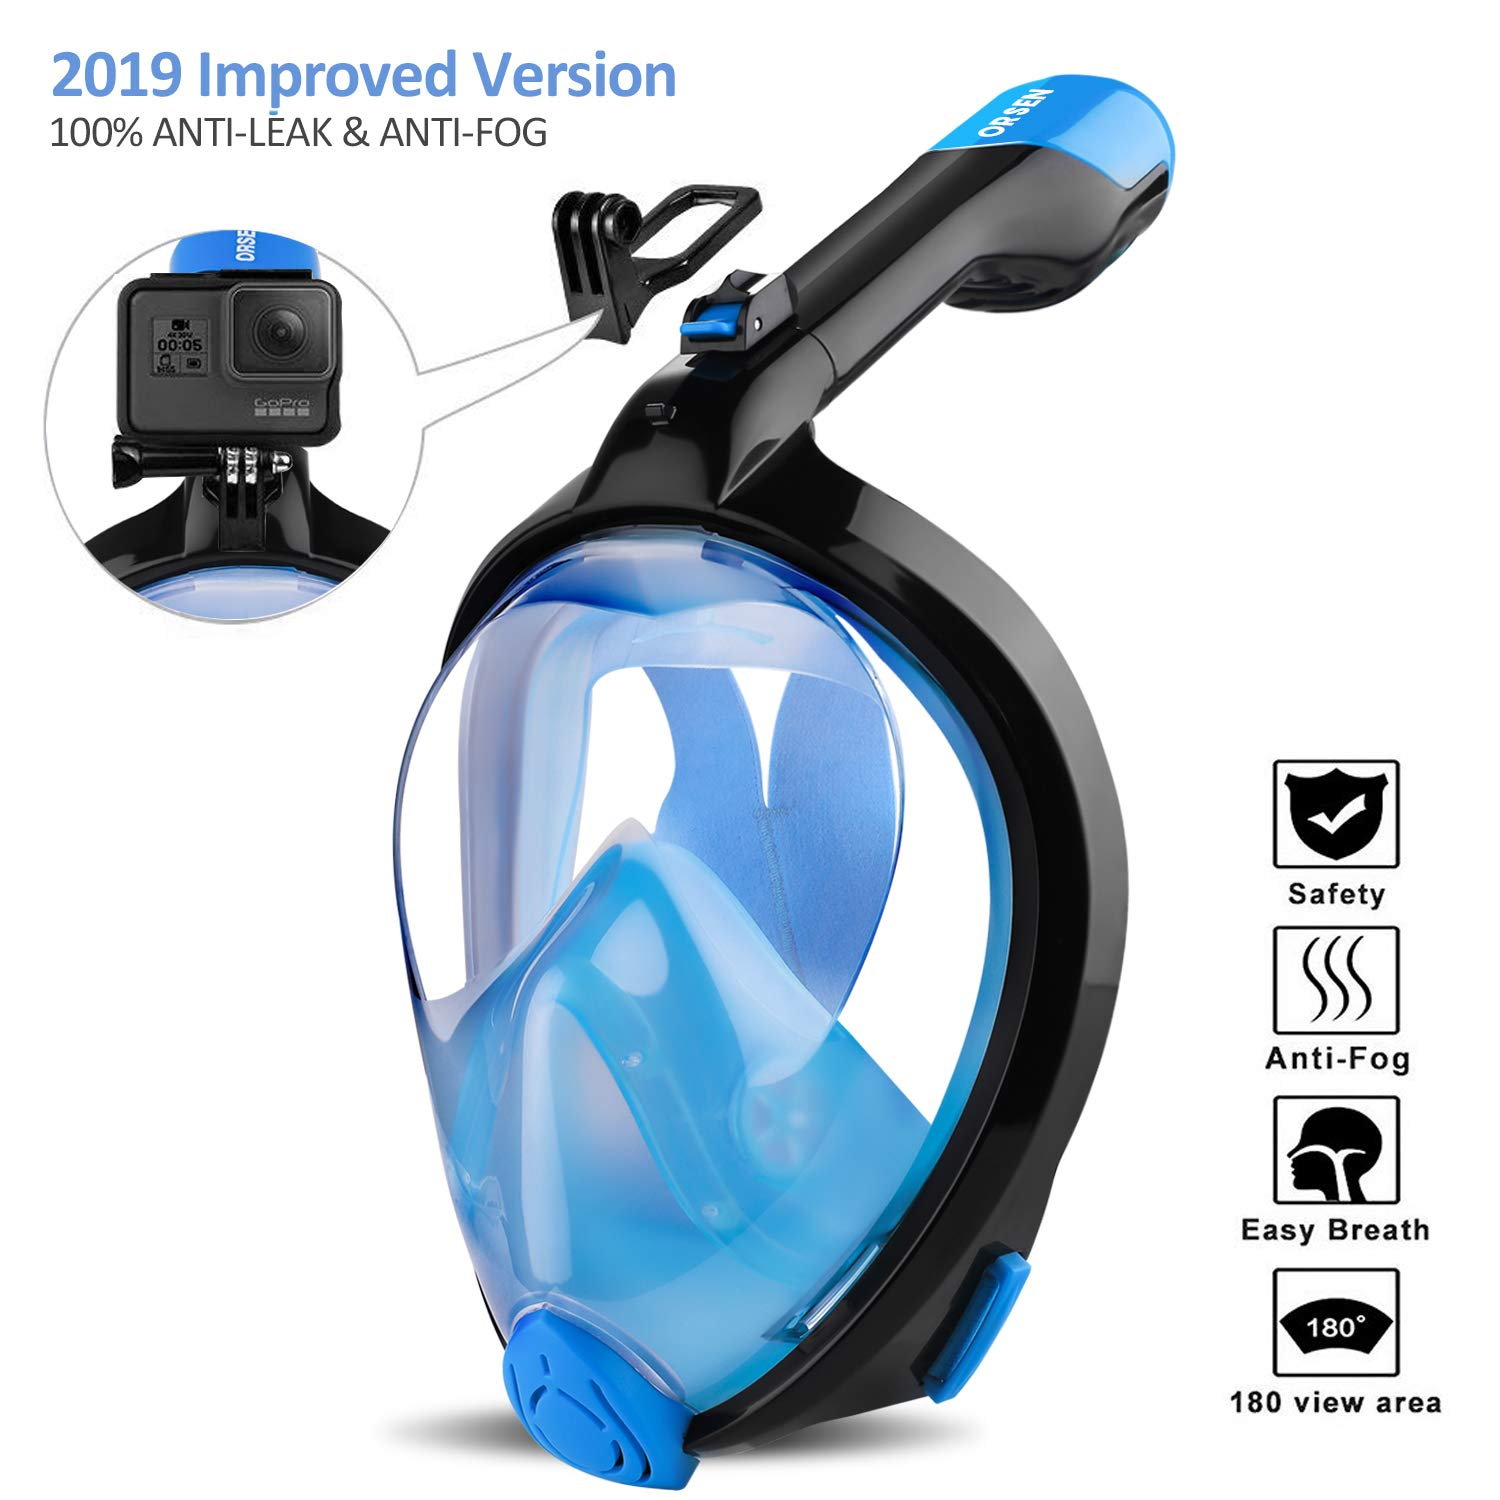 ORSEN Newest Snorkel Mask Foldable 180 Panoramic View Free Breathing Full Face Snorkeling Mask with Detachable Camera Mount, Dry Top Set Anti-Fog Anti-Leak for Adults & Kids (Black Blue, S/M) by ORSEN